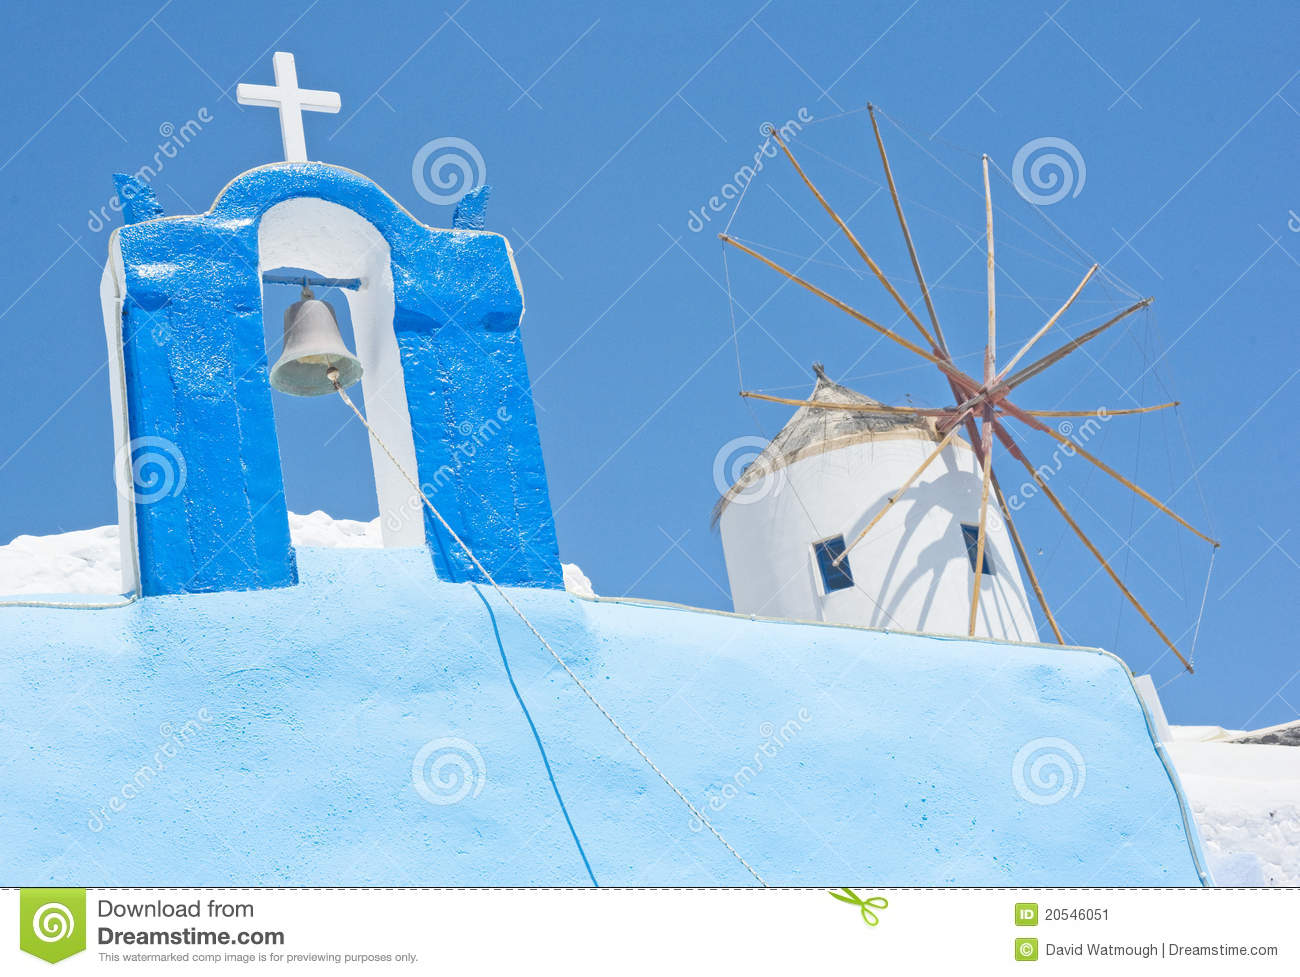 Cross and Windmill in Greece.